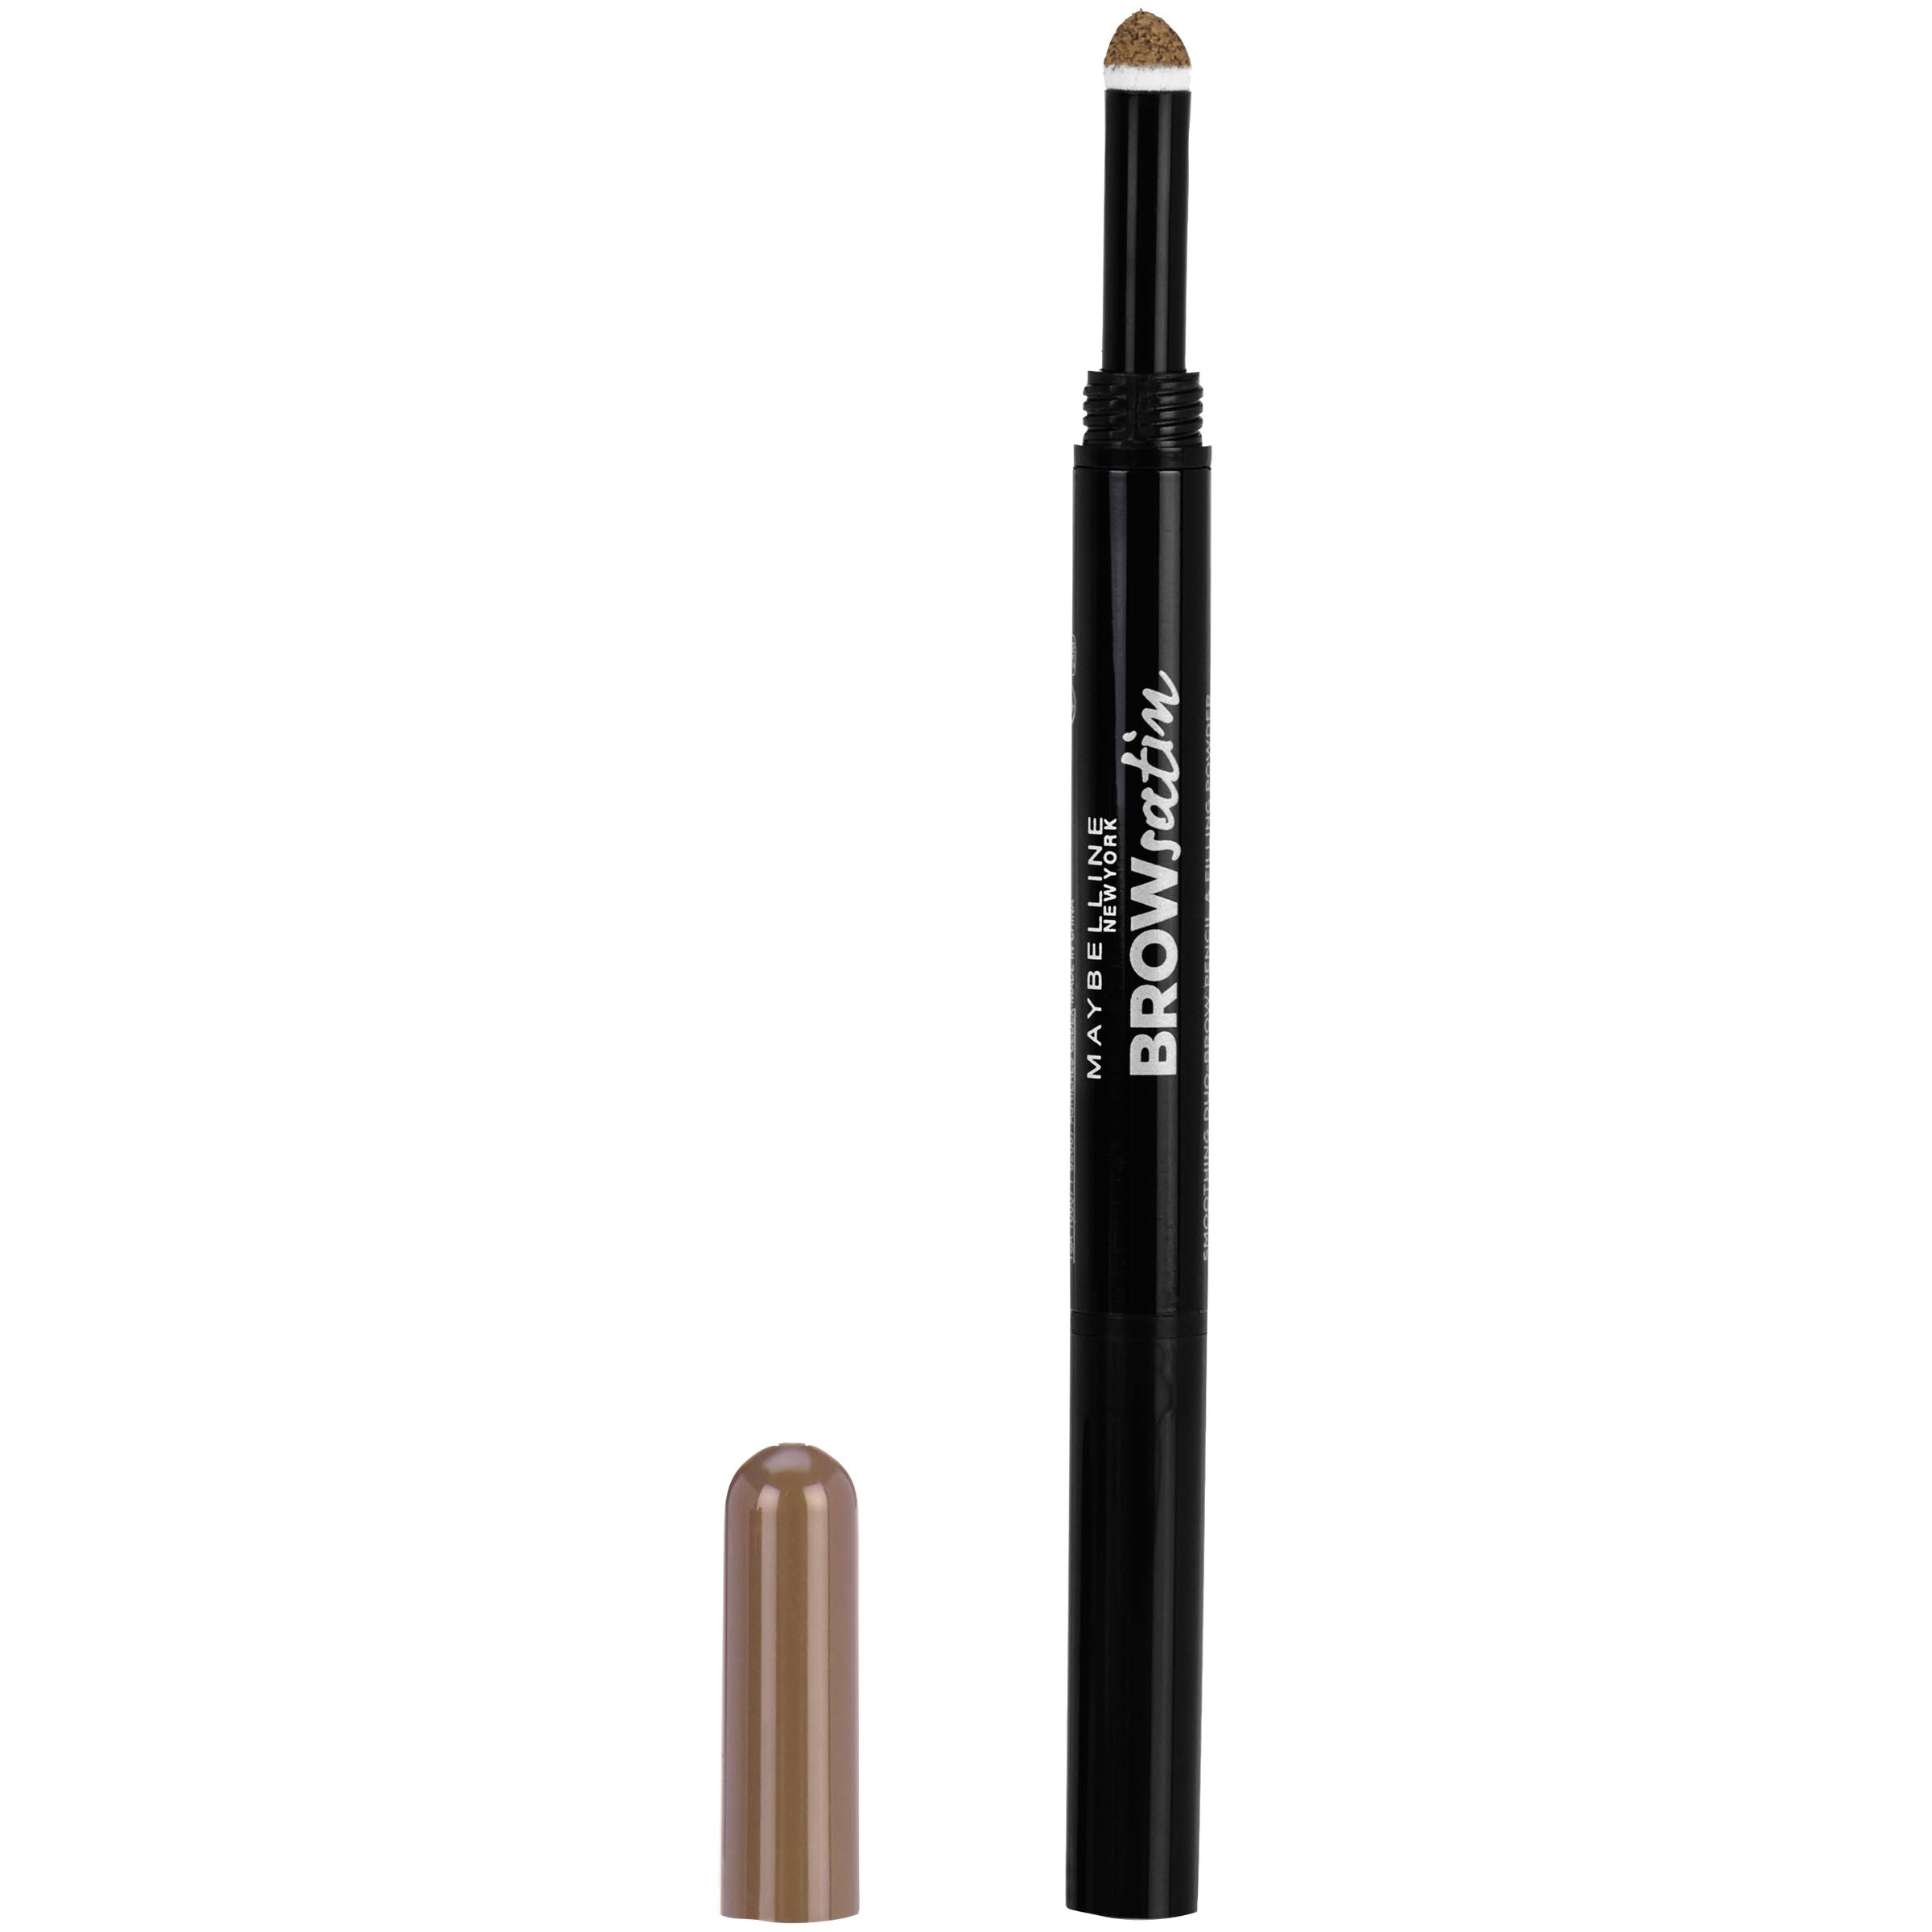 Maybelline Brow Define Fill Duo Makeup - Blonde, 0.021oz